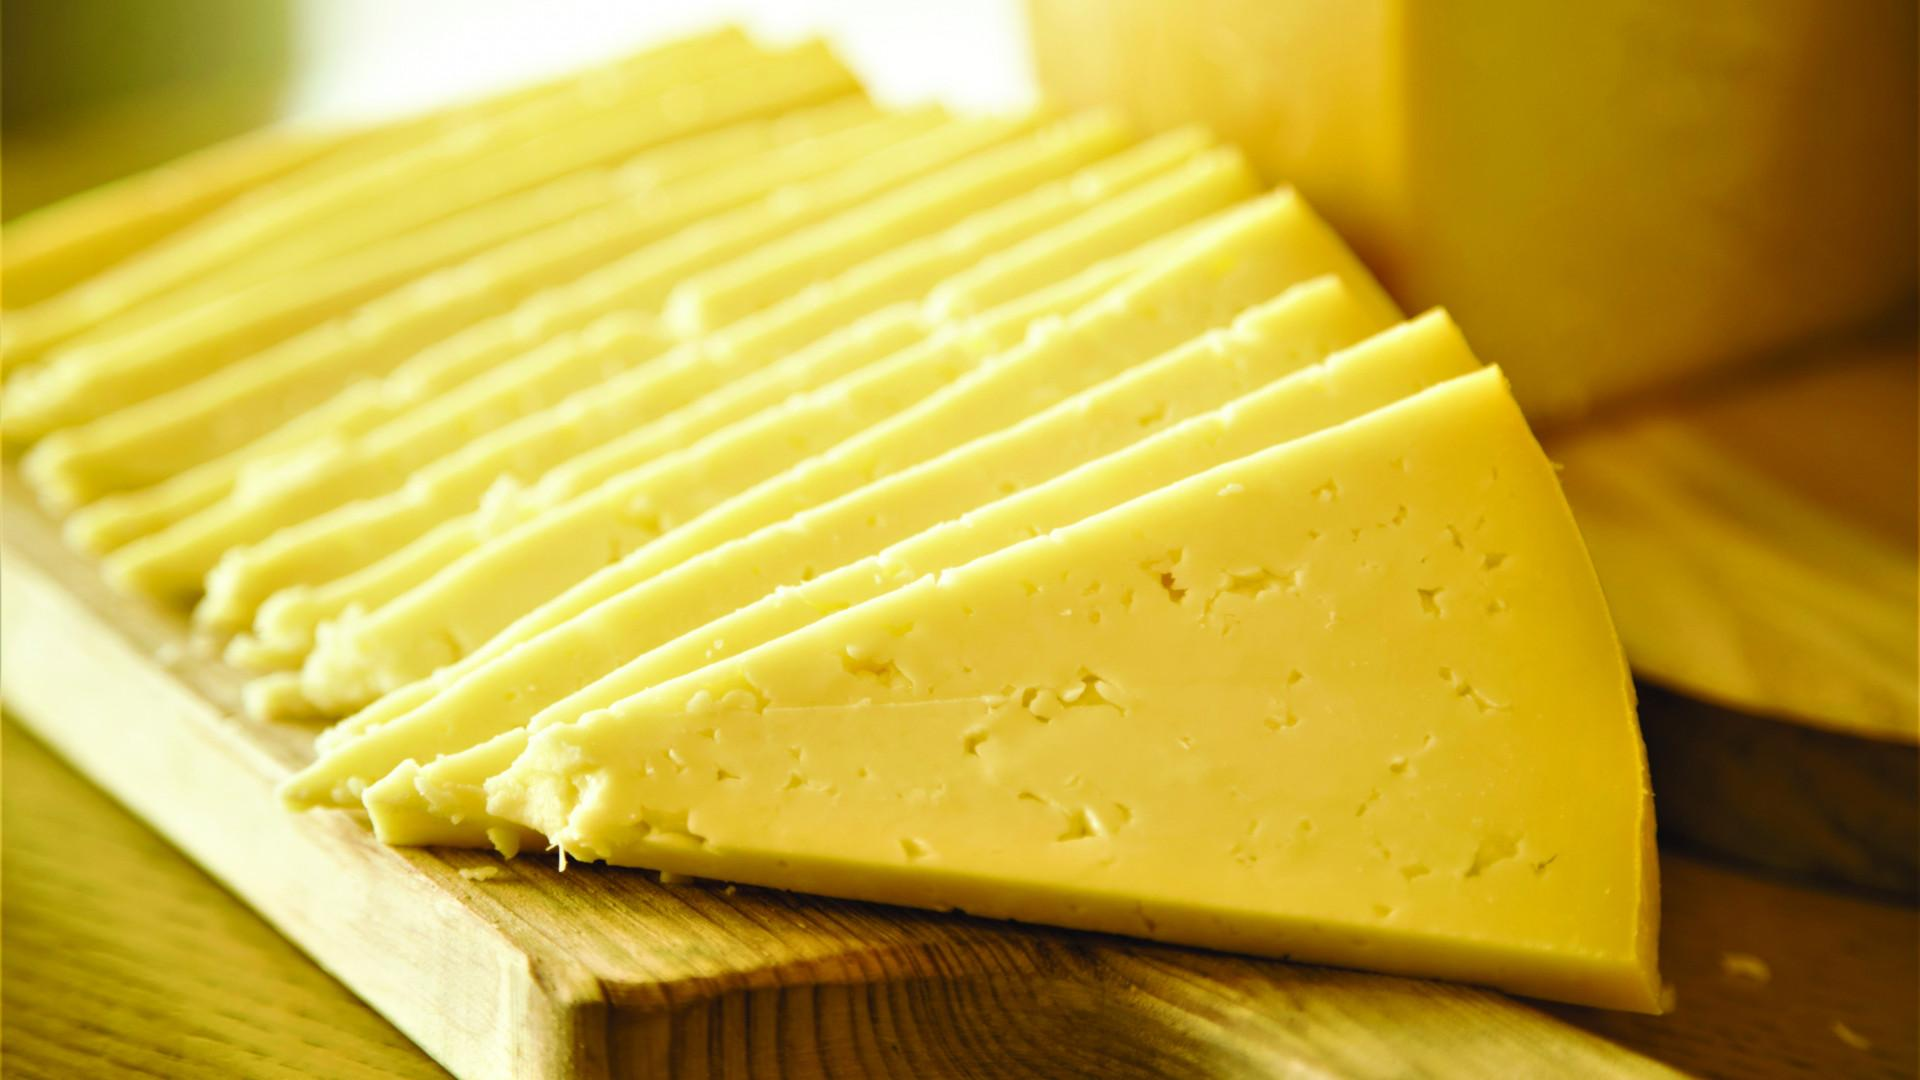 Azorean cheese from Portugal's Azores islands | Slices of Azorean cheese